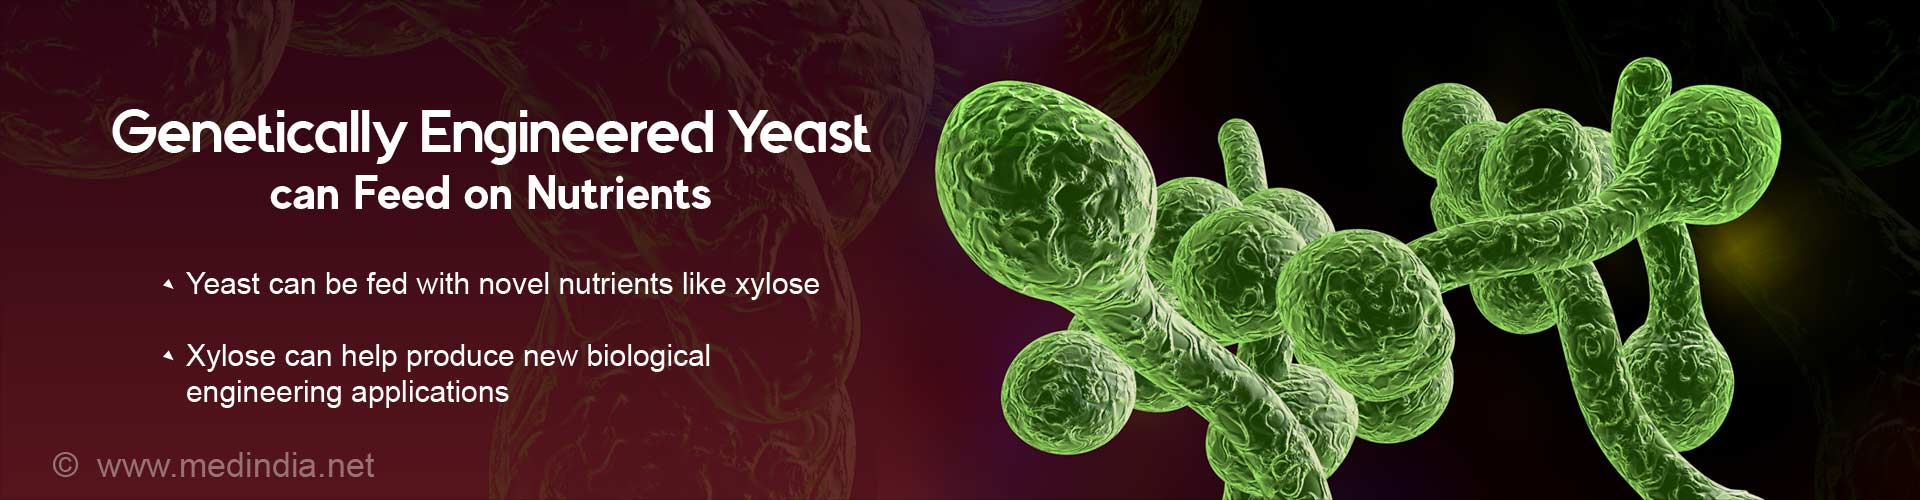 genetically engineered yeast can feed on nutrients